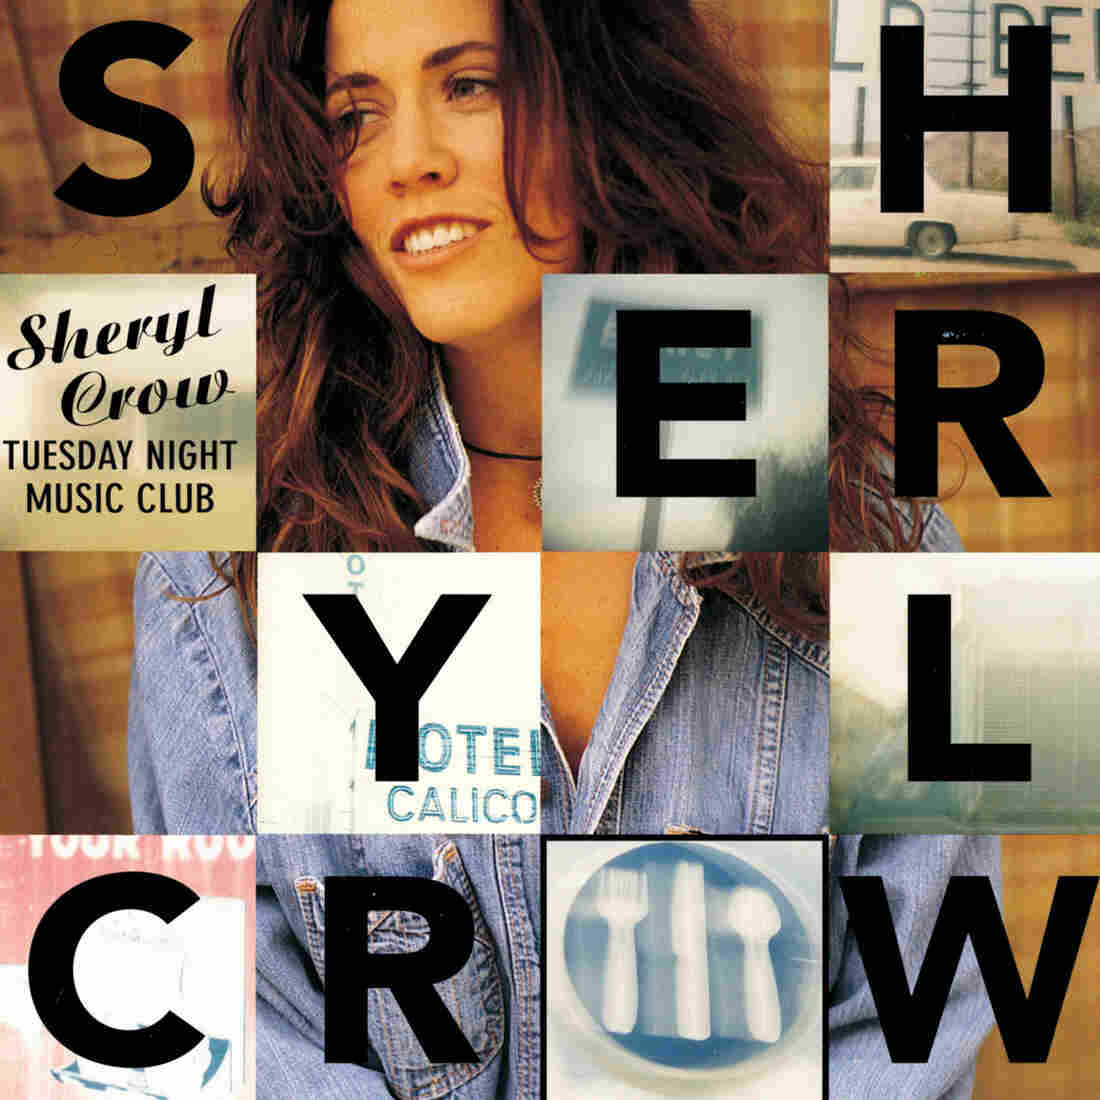 Sheryl Crow, Tuesday Night Music Club